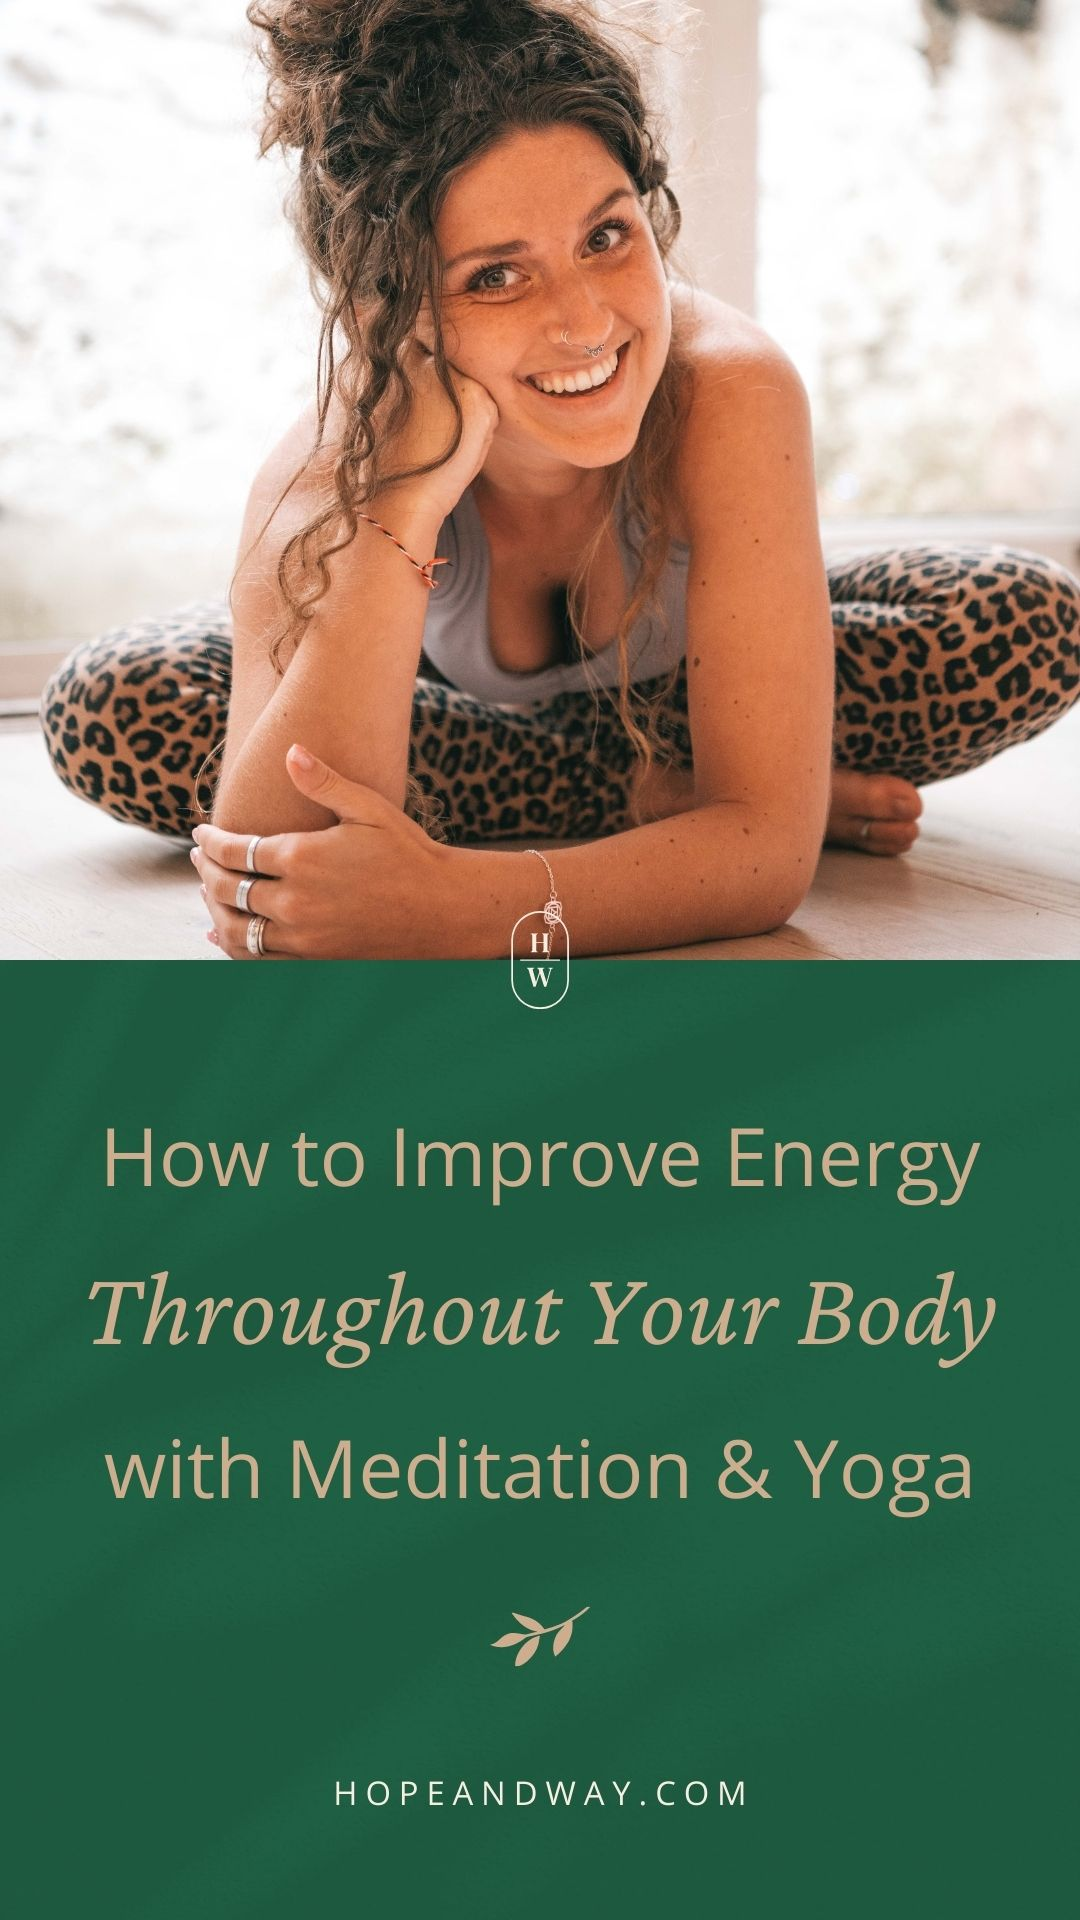 How to Improve Energy Throughout Your Body with Meditation and Yoga? Interview with Alice Powell